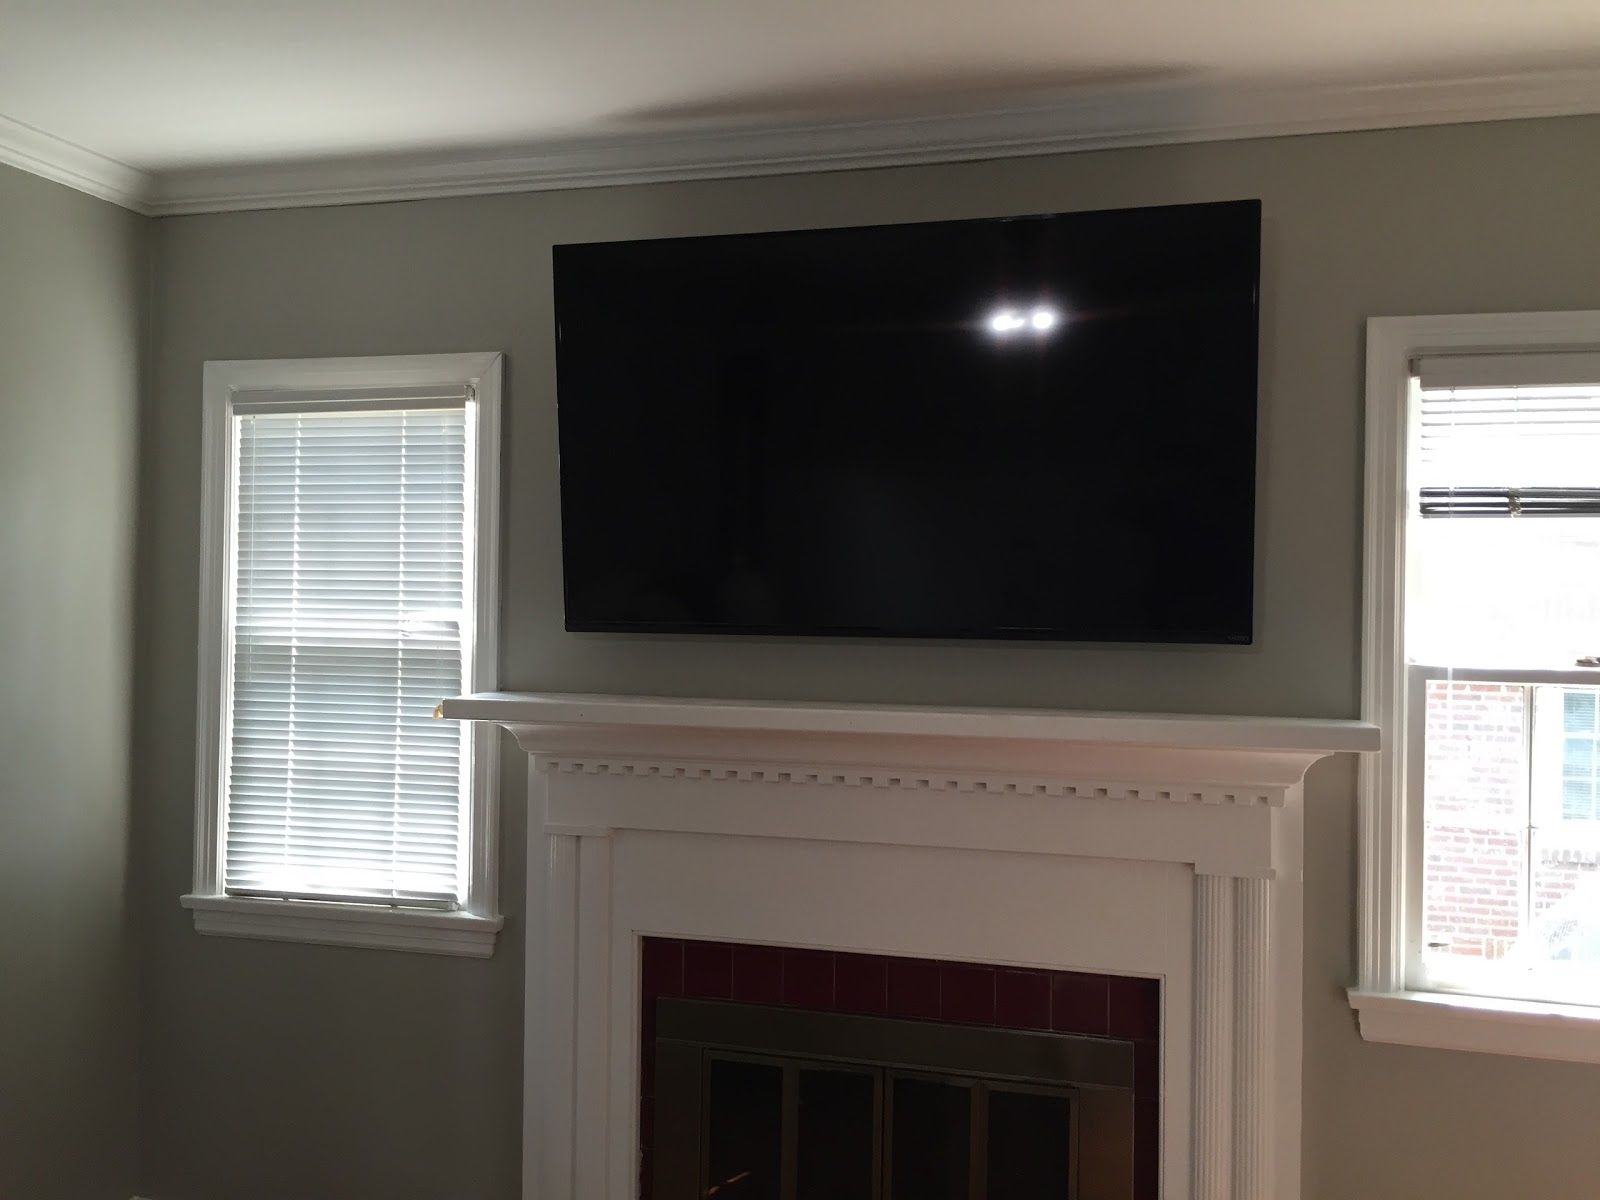 Mount Tv On Brick Wall Hide Wires Http Bottomunion Com  # Muebles Bobrick